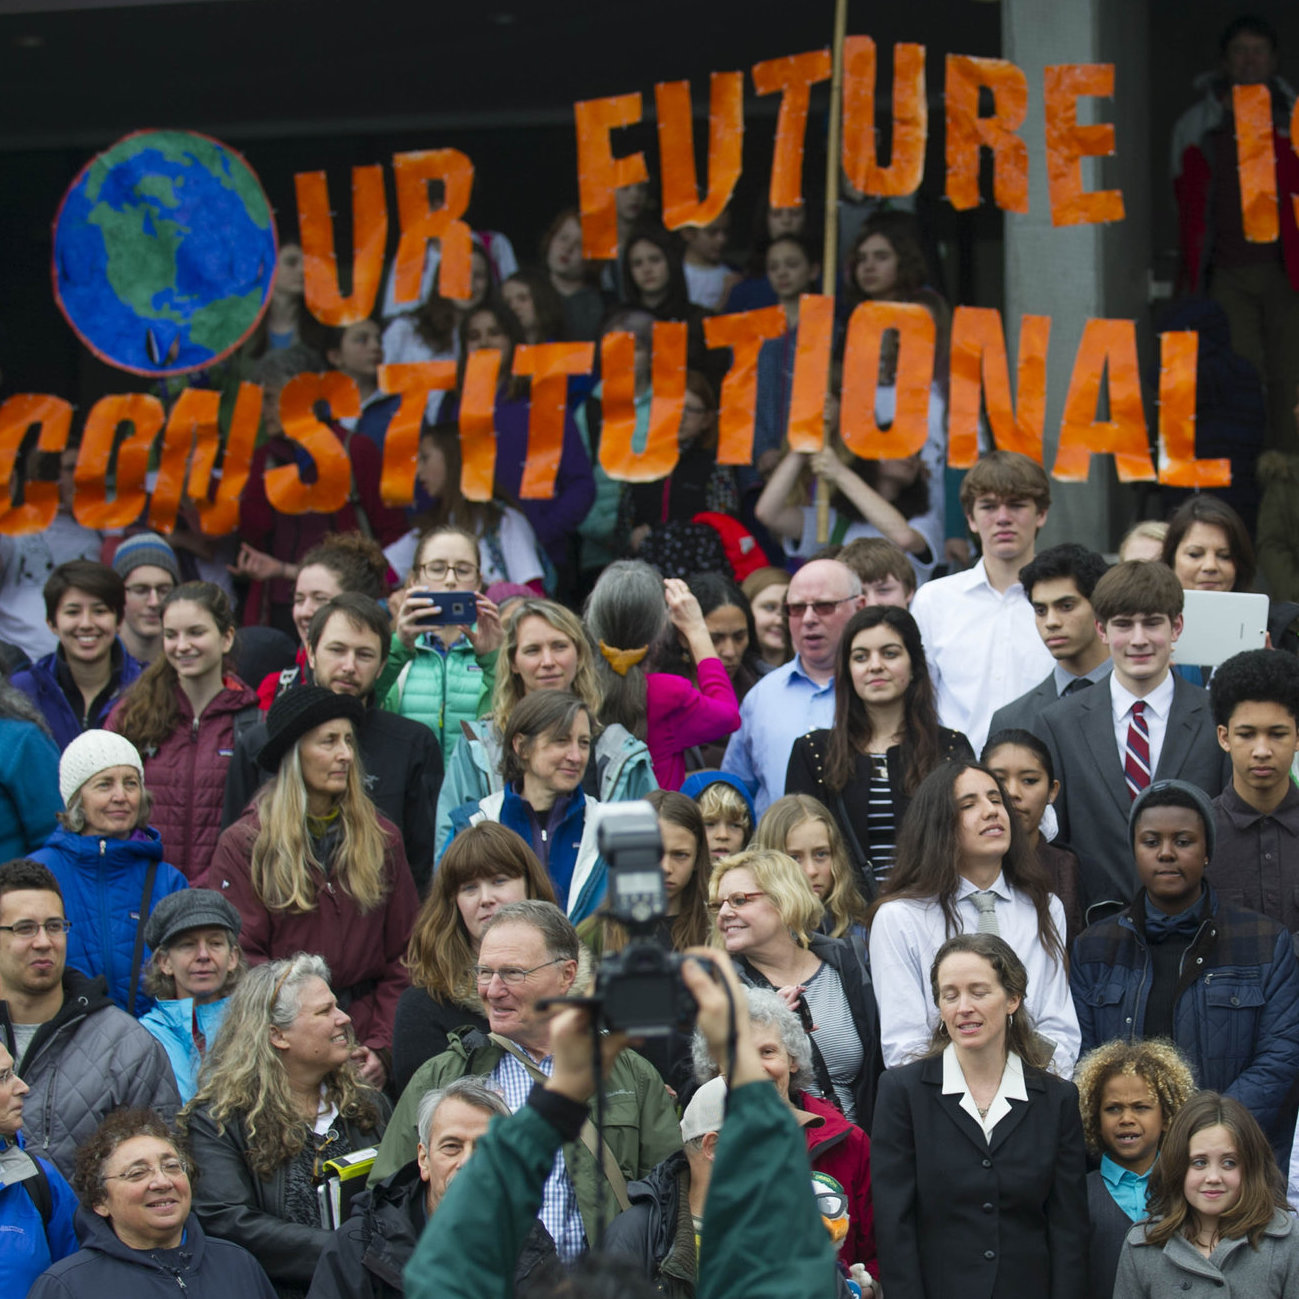 Our+future+is+a+constitutional+right.jpg